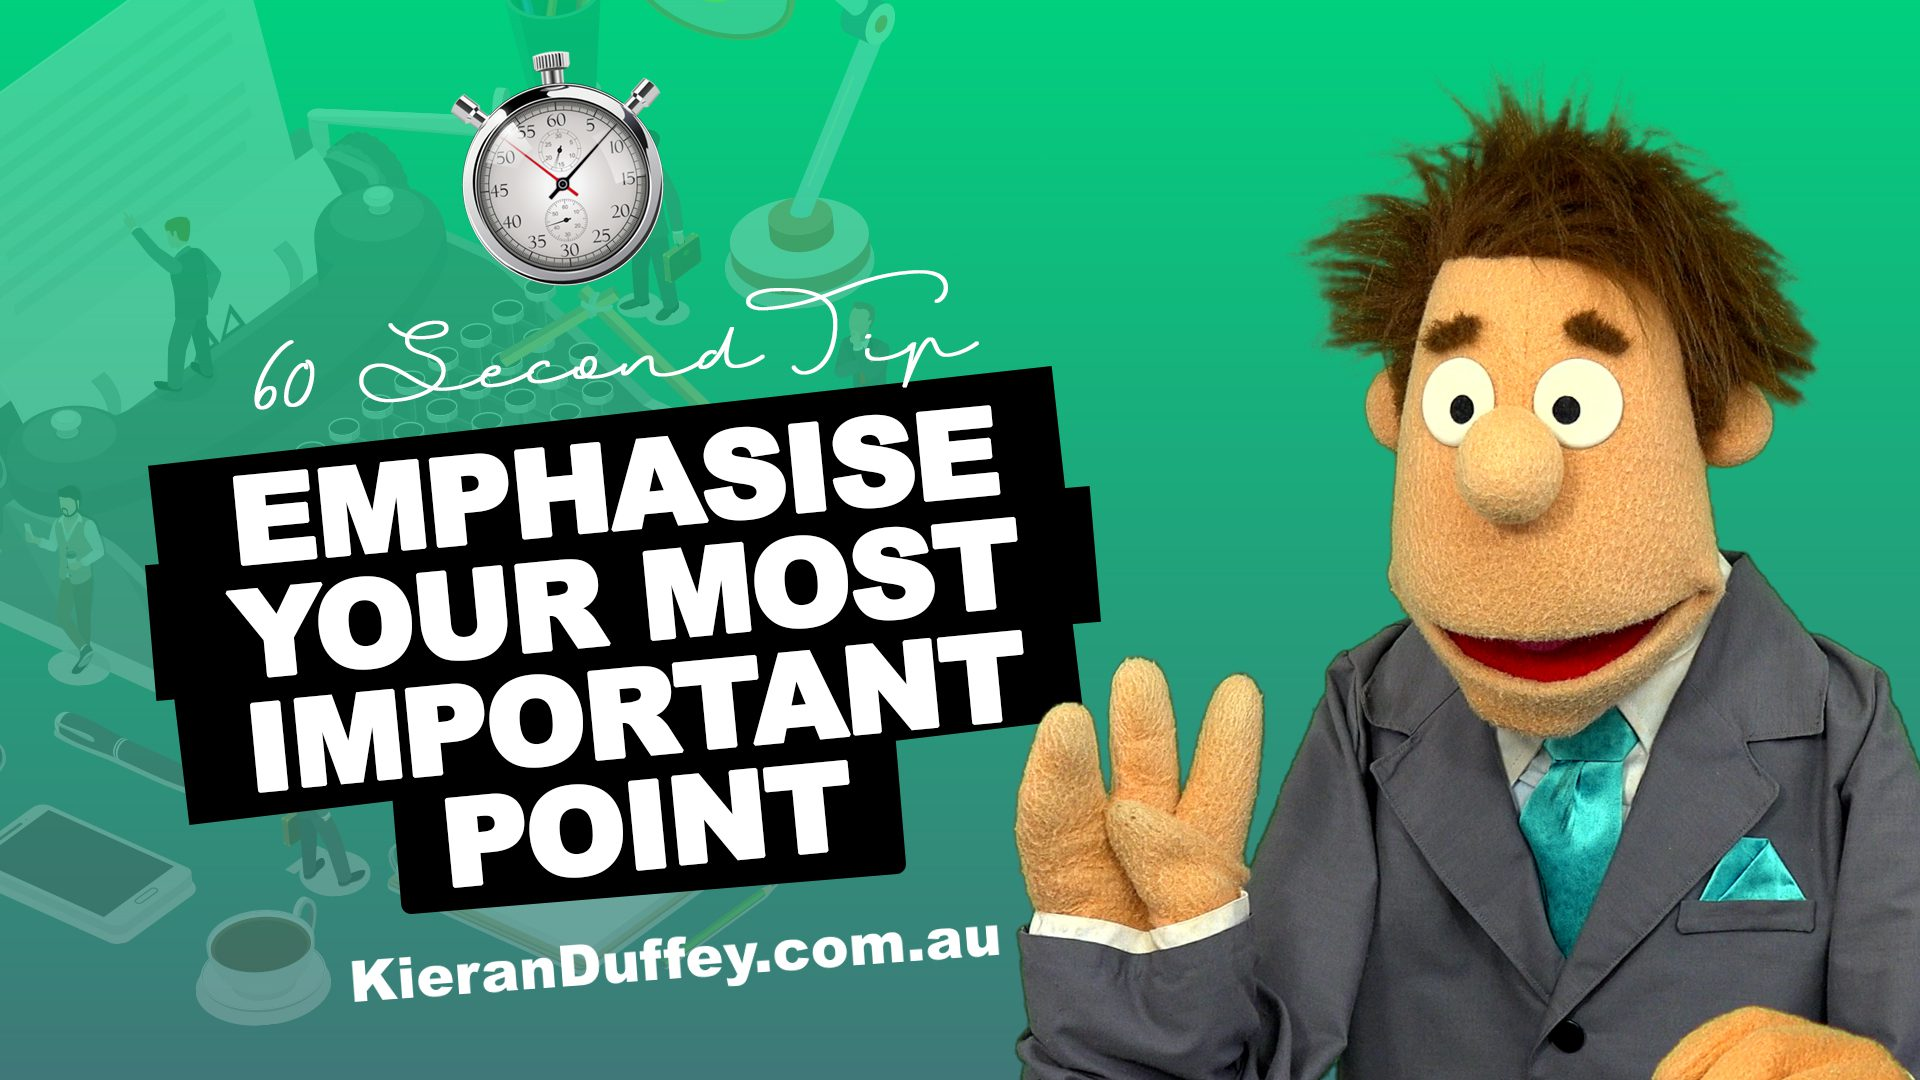 Video explaining why you need to emphasise your most important point in copywriting